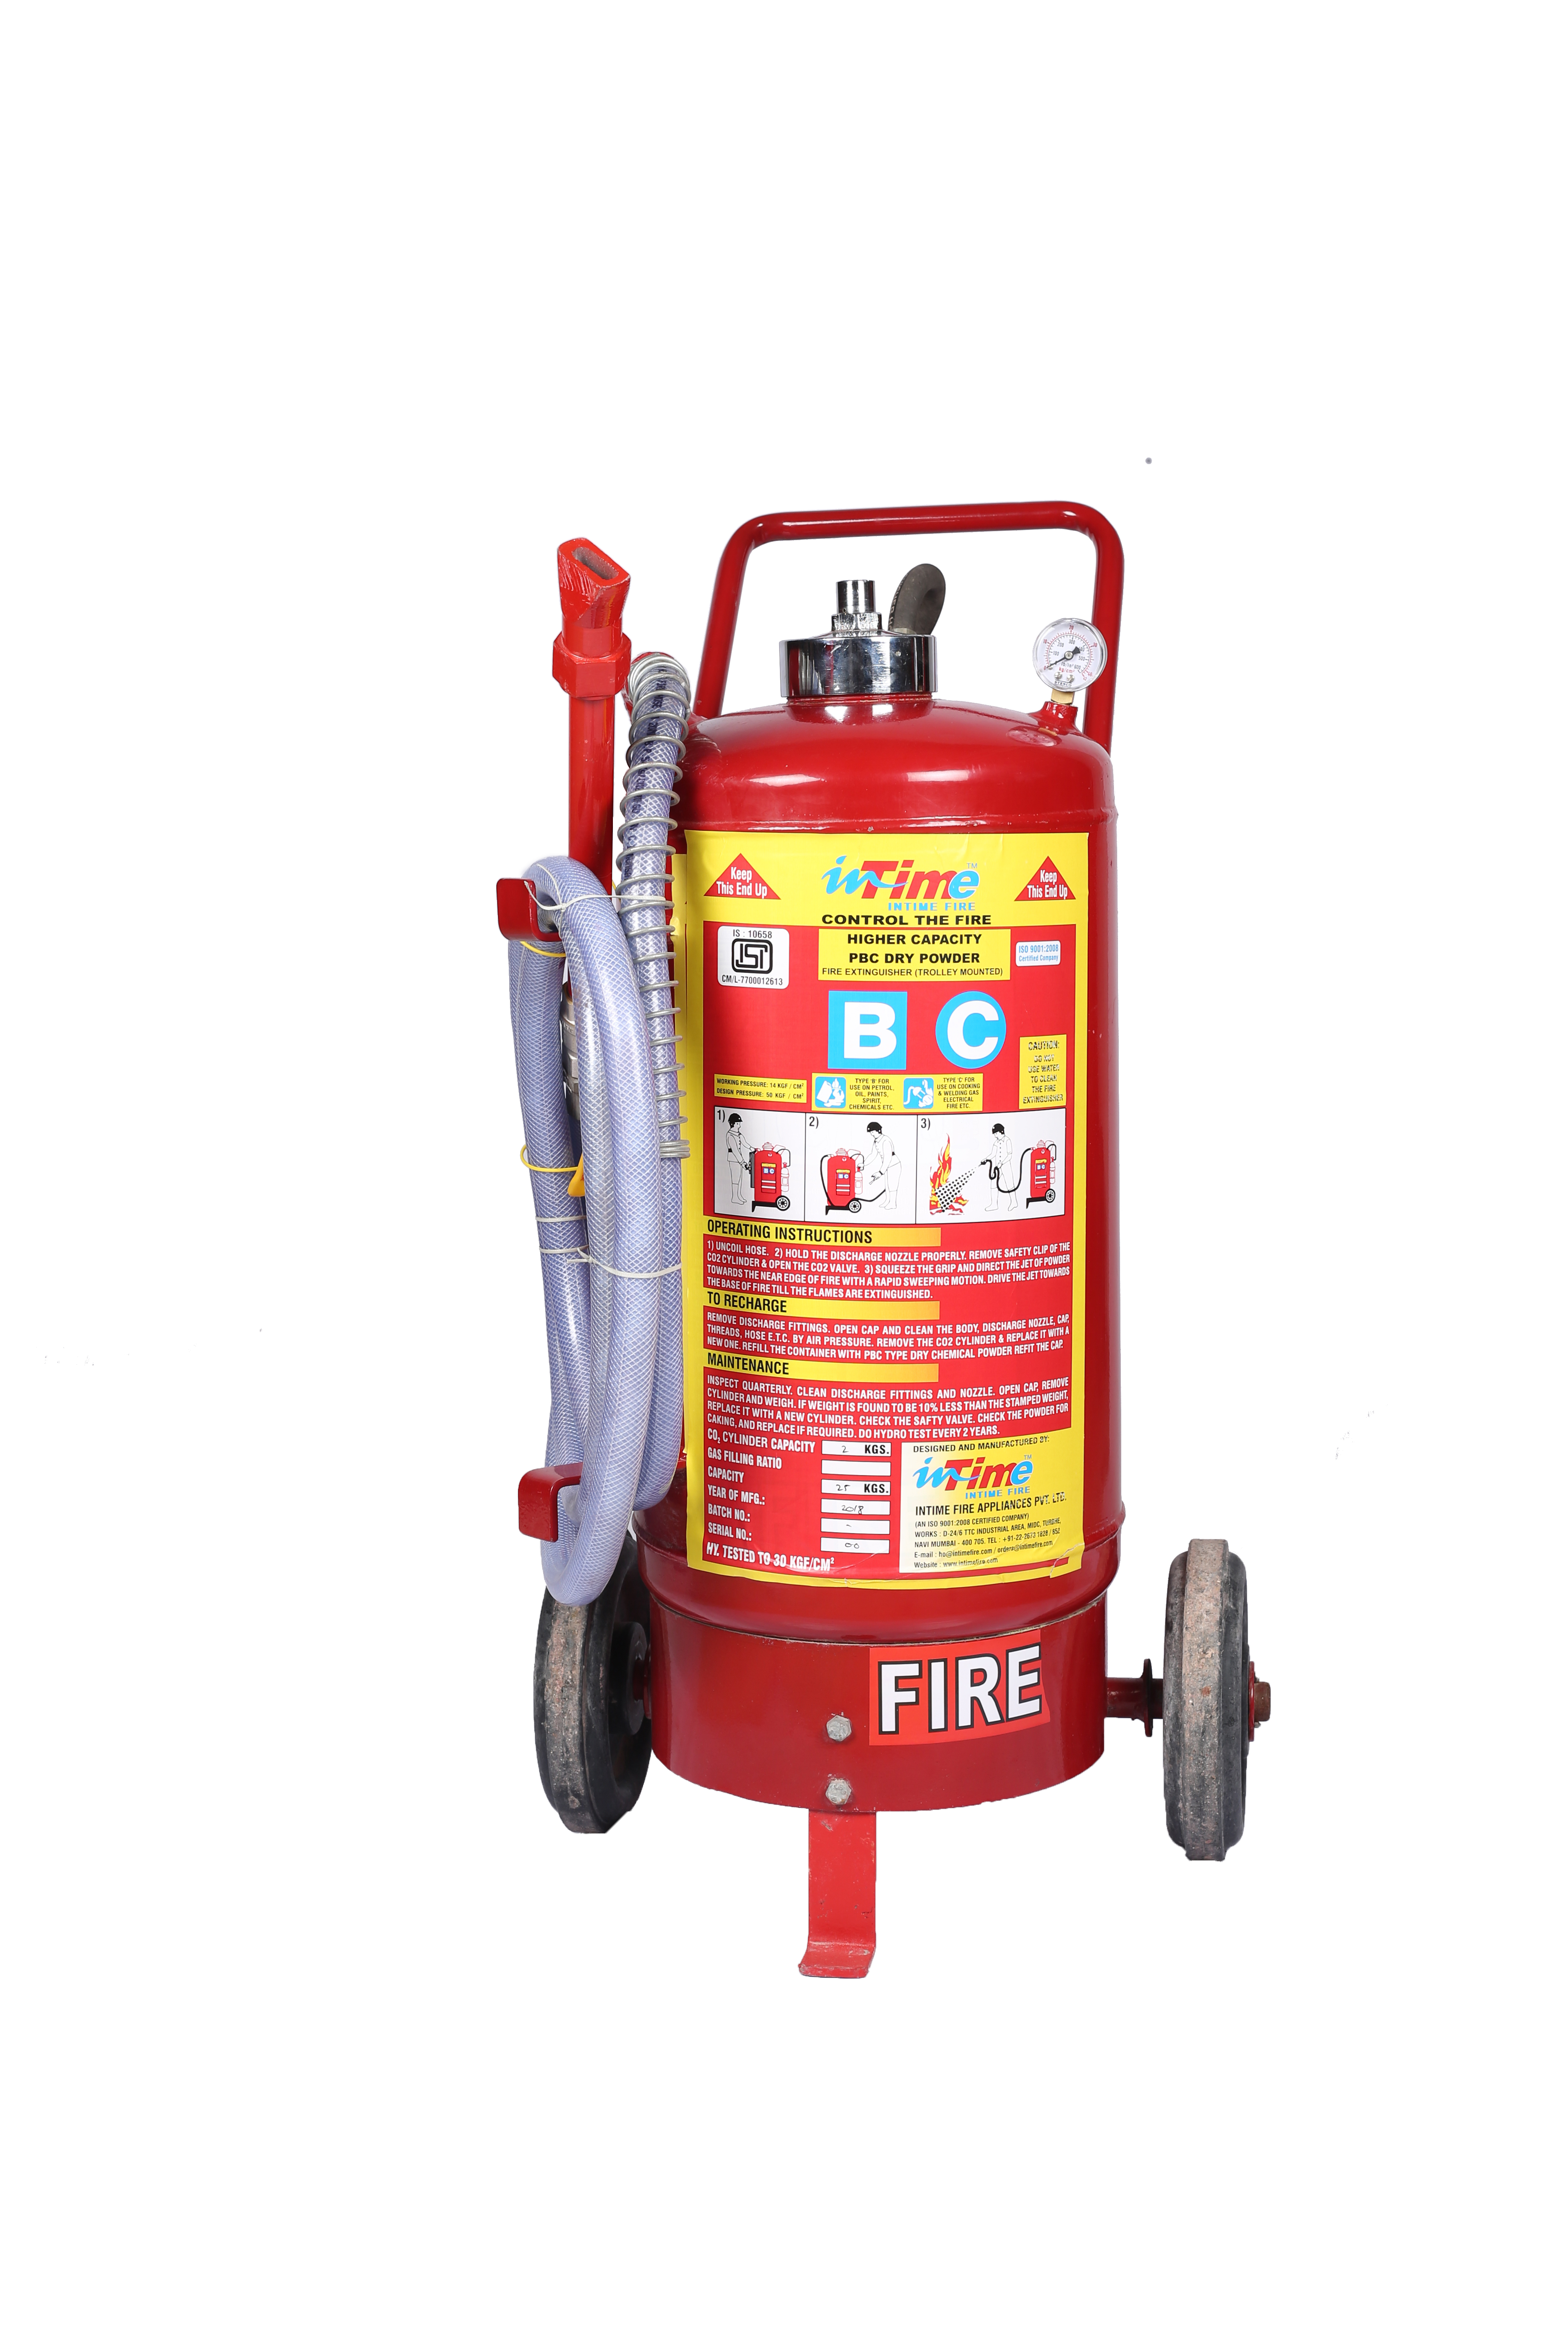 Higher Capacity Stored Pressure Trolley Powder Fire Extinguishers